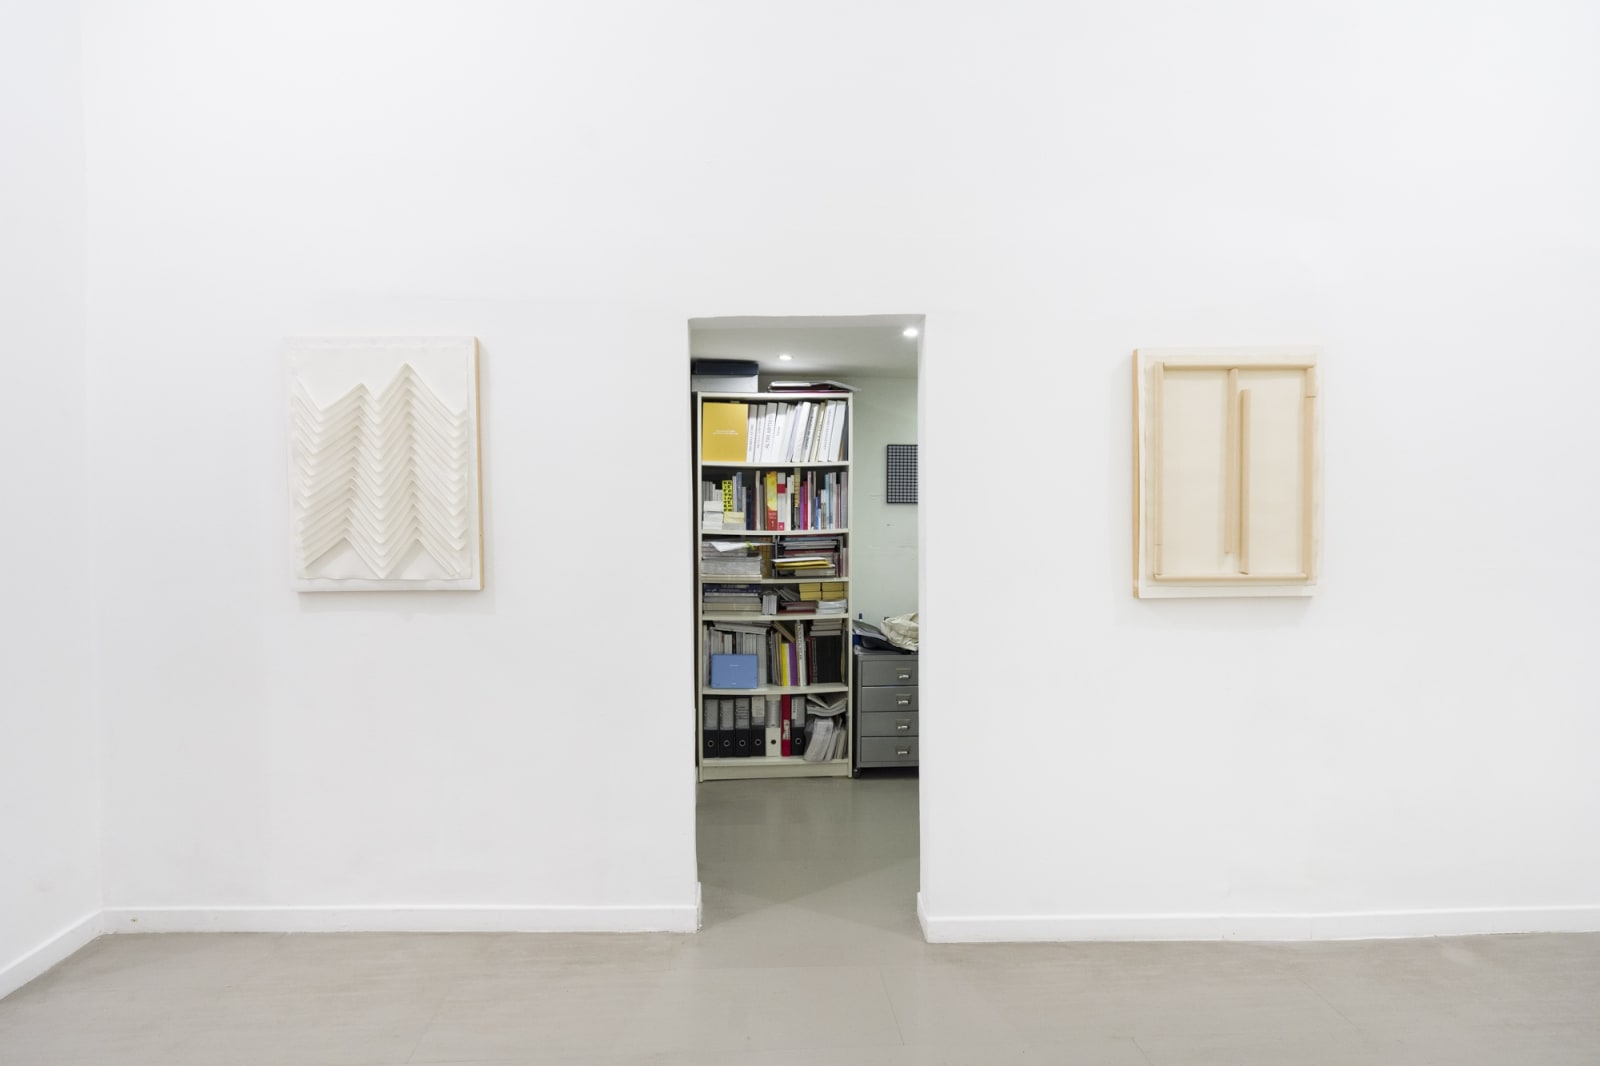 Sharing Our Dreaming Room, installation view, second hall, ph. Masiar Pasquali